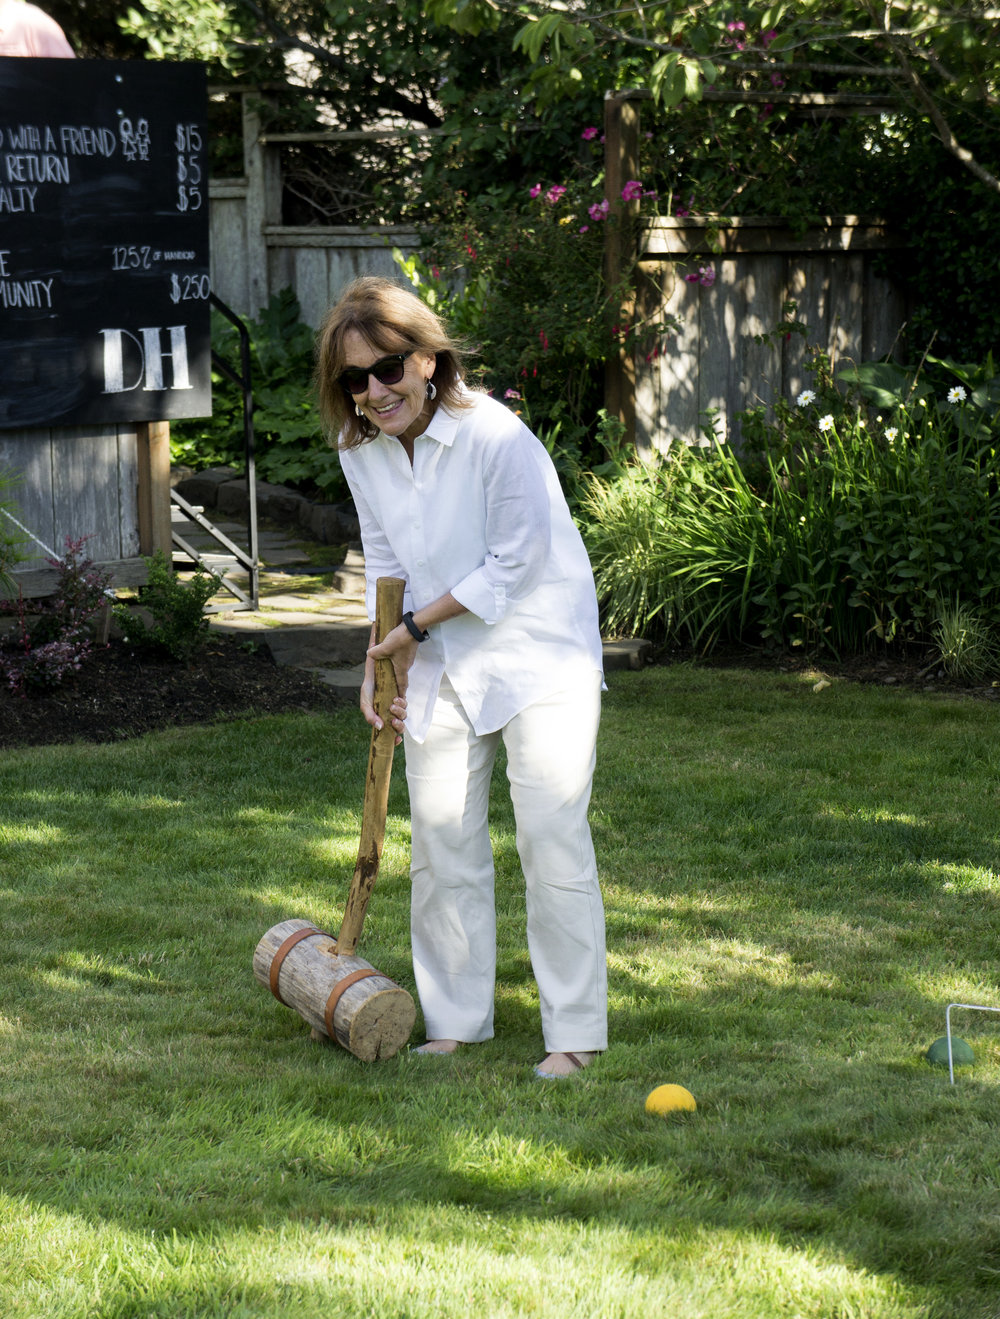 Thor's hammer at the croquet classic